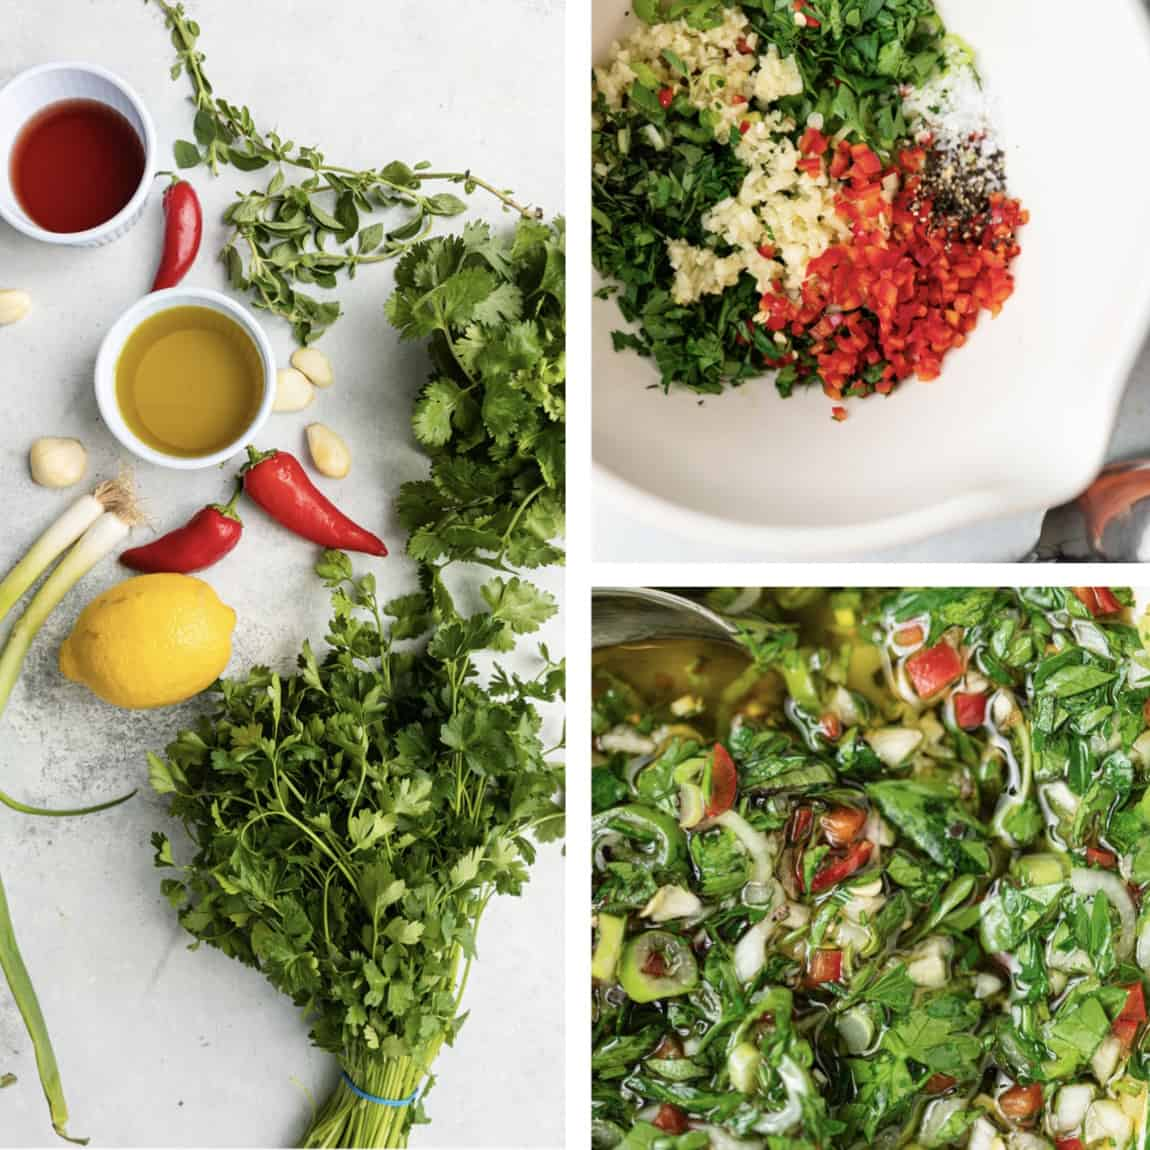 chiles, cilantro and parsley with lemon